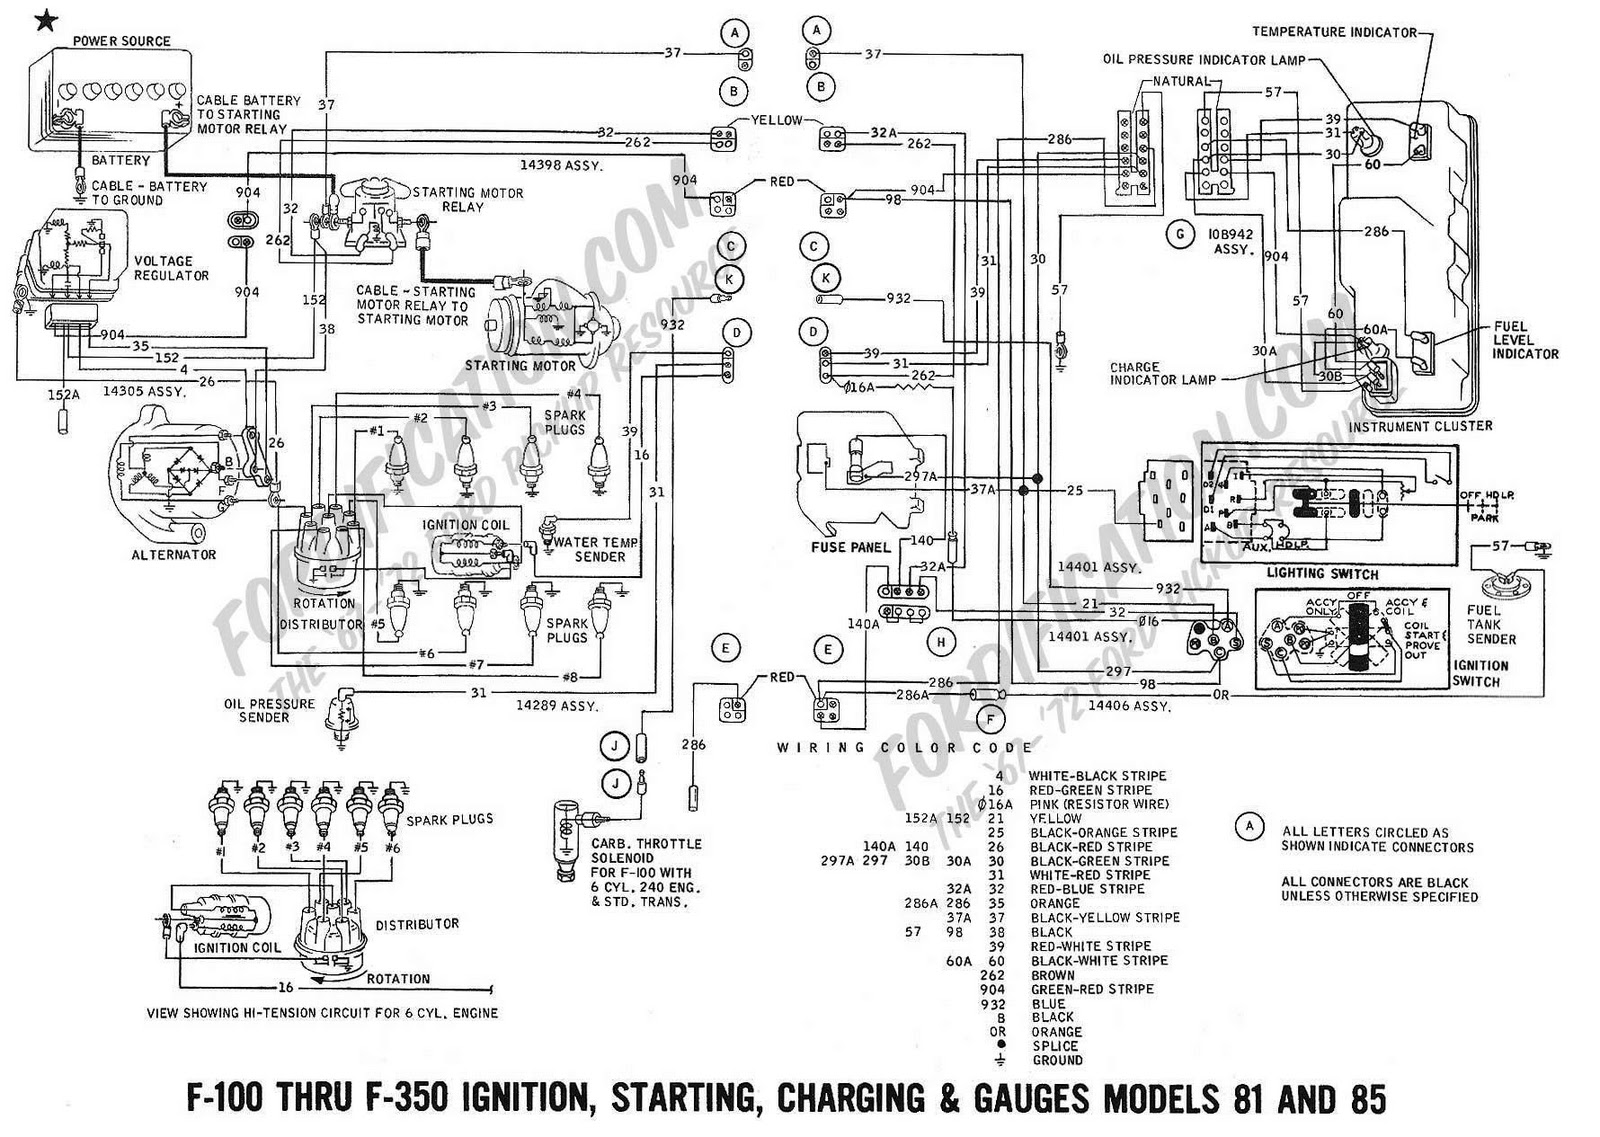 1966 f100 wiring harness wiring diagram add 1968 F100 Wiring Harness 1969 f100 wiring diagram wiring diagram g11 1966 ford f100 wheels 1966 f100 wiring harness